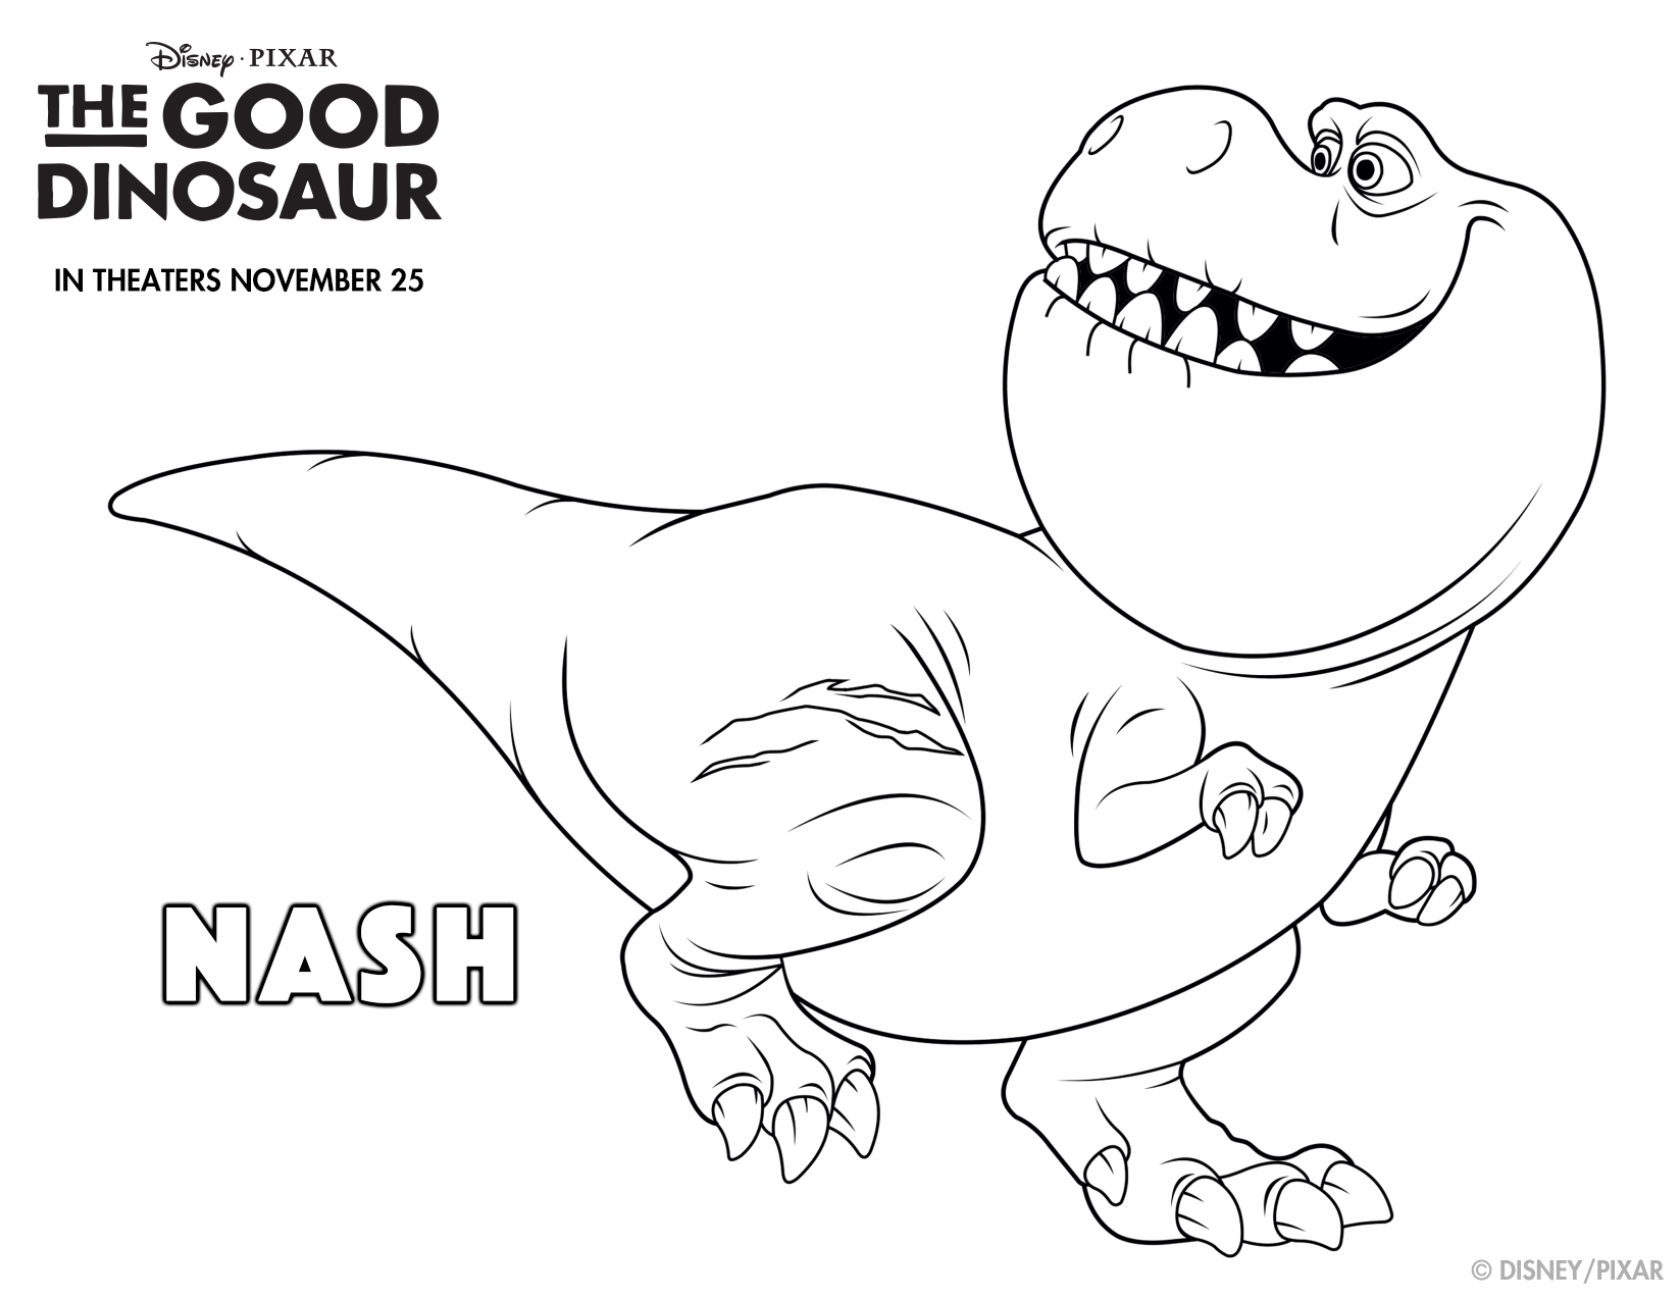 Get rough and tough with this Good Dino coloring sheet Meet Nash in theatres this Coloriages GratuitsFeuilles De Coloration